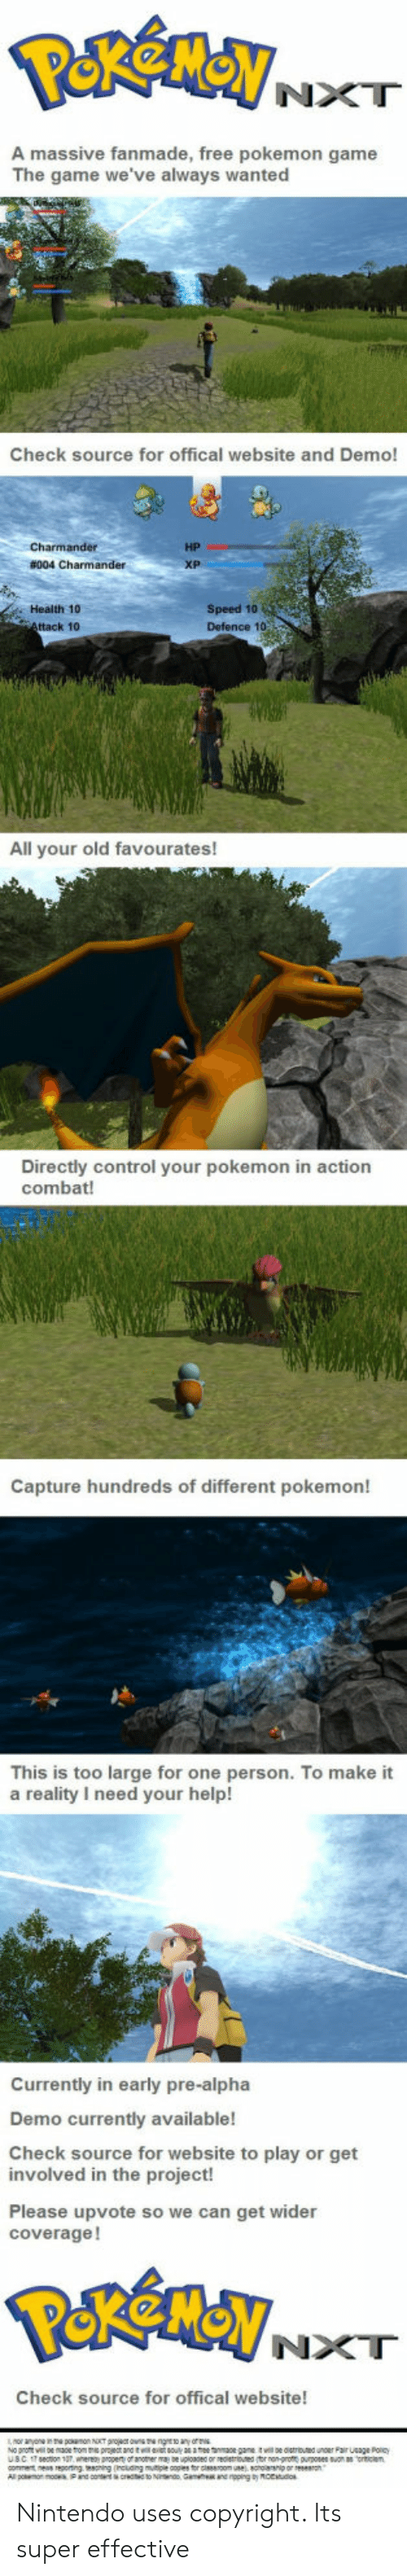 nxt: NXT  A massive fanmade, free pokemon game  The game we've always wanted  Check source for offical website and Demo!  HP  Health 10  ttack 10  Speed 10  Defence 1o  All your old favourates!  Directly control your pokemon in action  combat!  Capture hundreds of different pokemon!  This is too large for one person. To make it  a reality I need your help!  Currently in early pre-alpha  Demo currently available!  Check source for website to play or get  involved in the project!  Please upvote so we can get wider  coverage!  NXT  Check source for offical website! Nintendo uses copyright. Its super effective